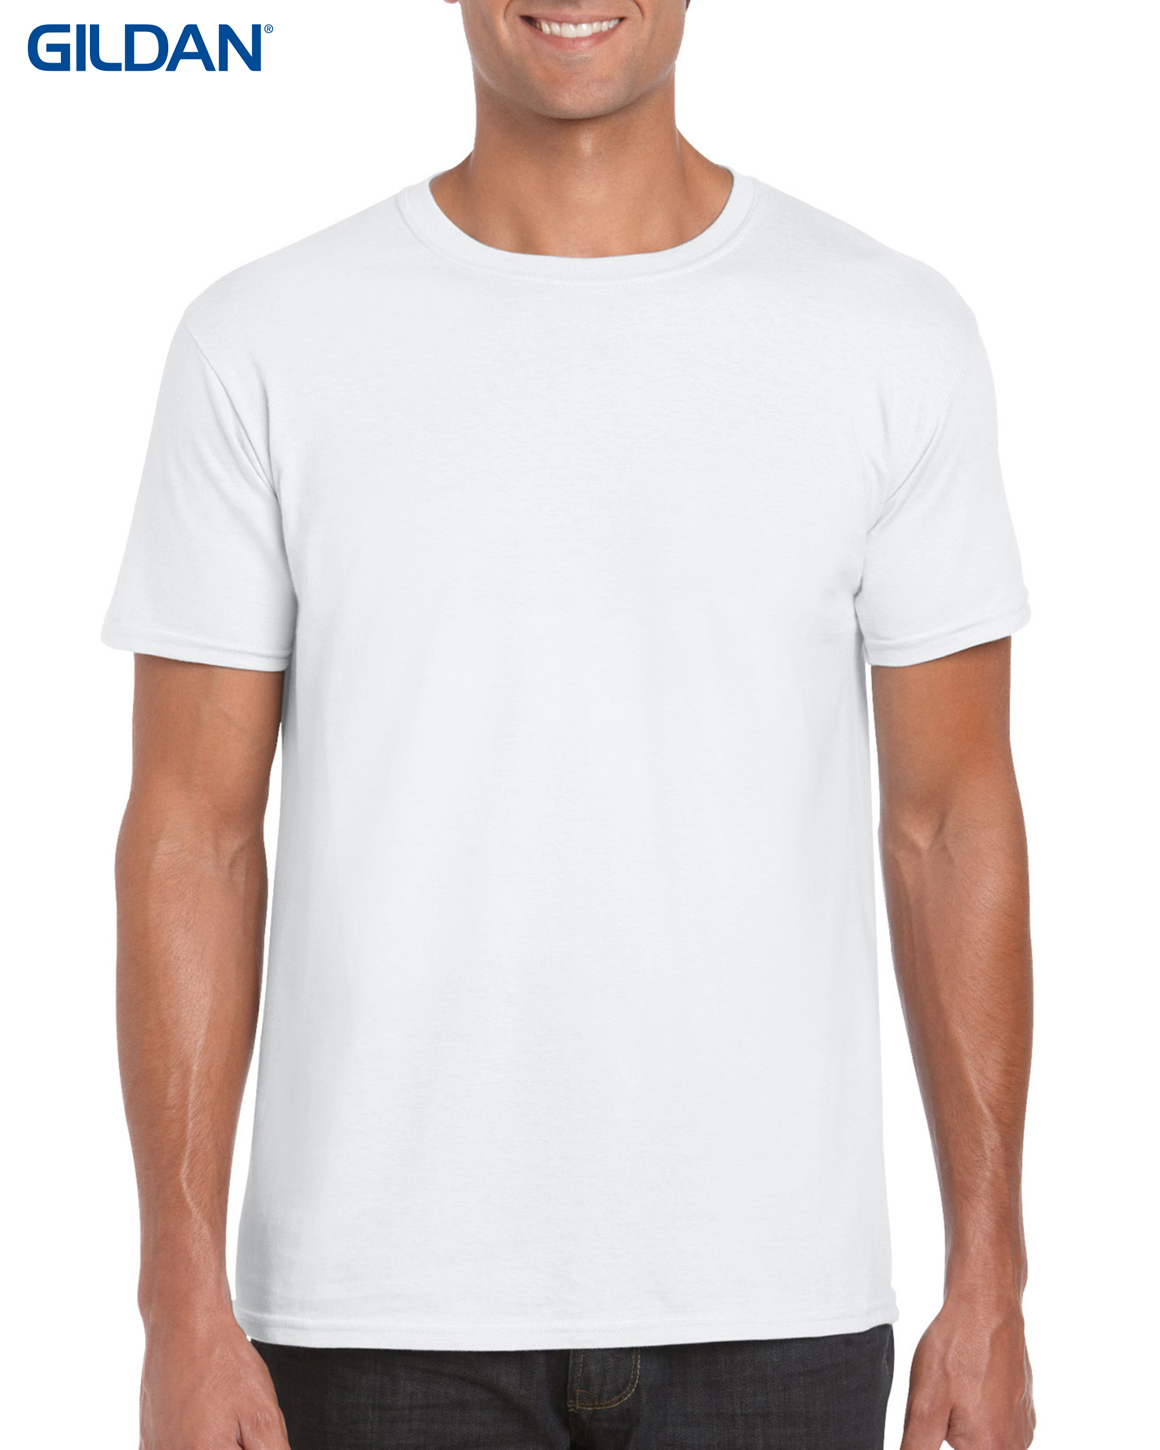 50fceefb T Shirts : GILDAN MENS LIGHTWEIGHT 150GM 100% COTTON CN T-SHIRT G6400